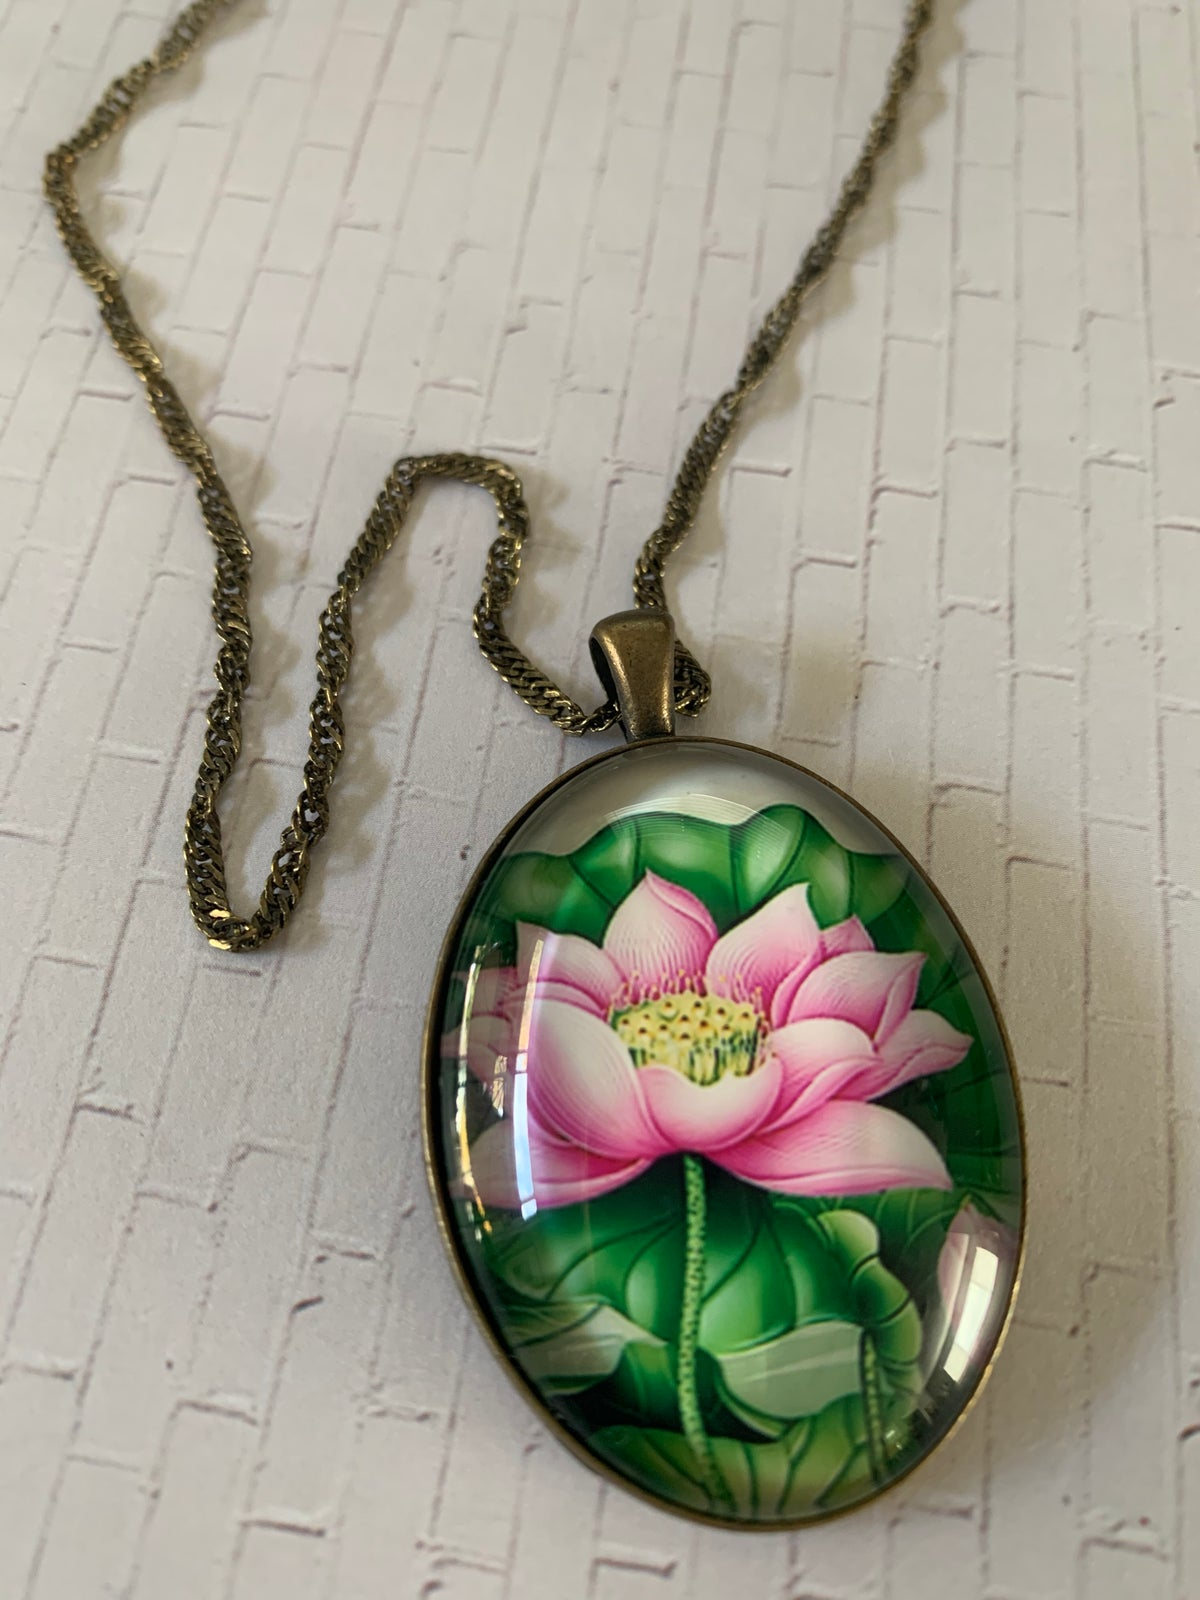 Image of Loraleigh - I'll be in the garden collection